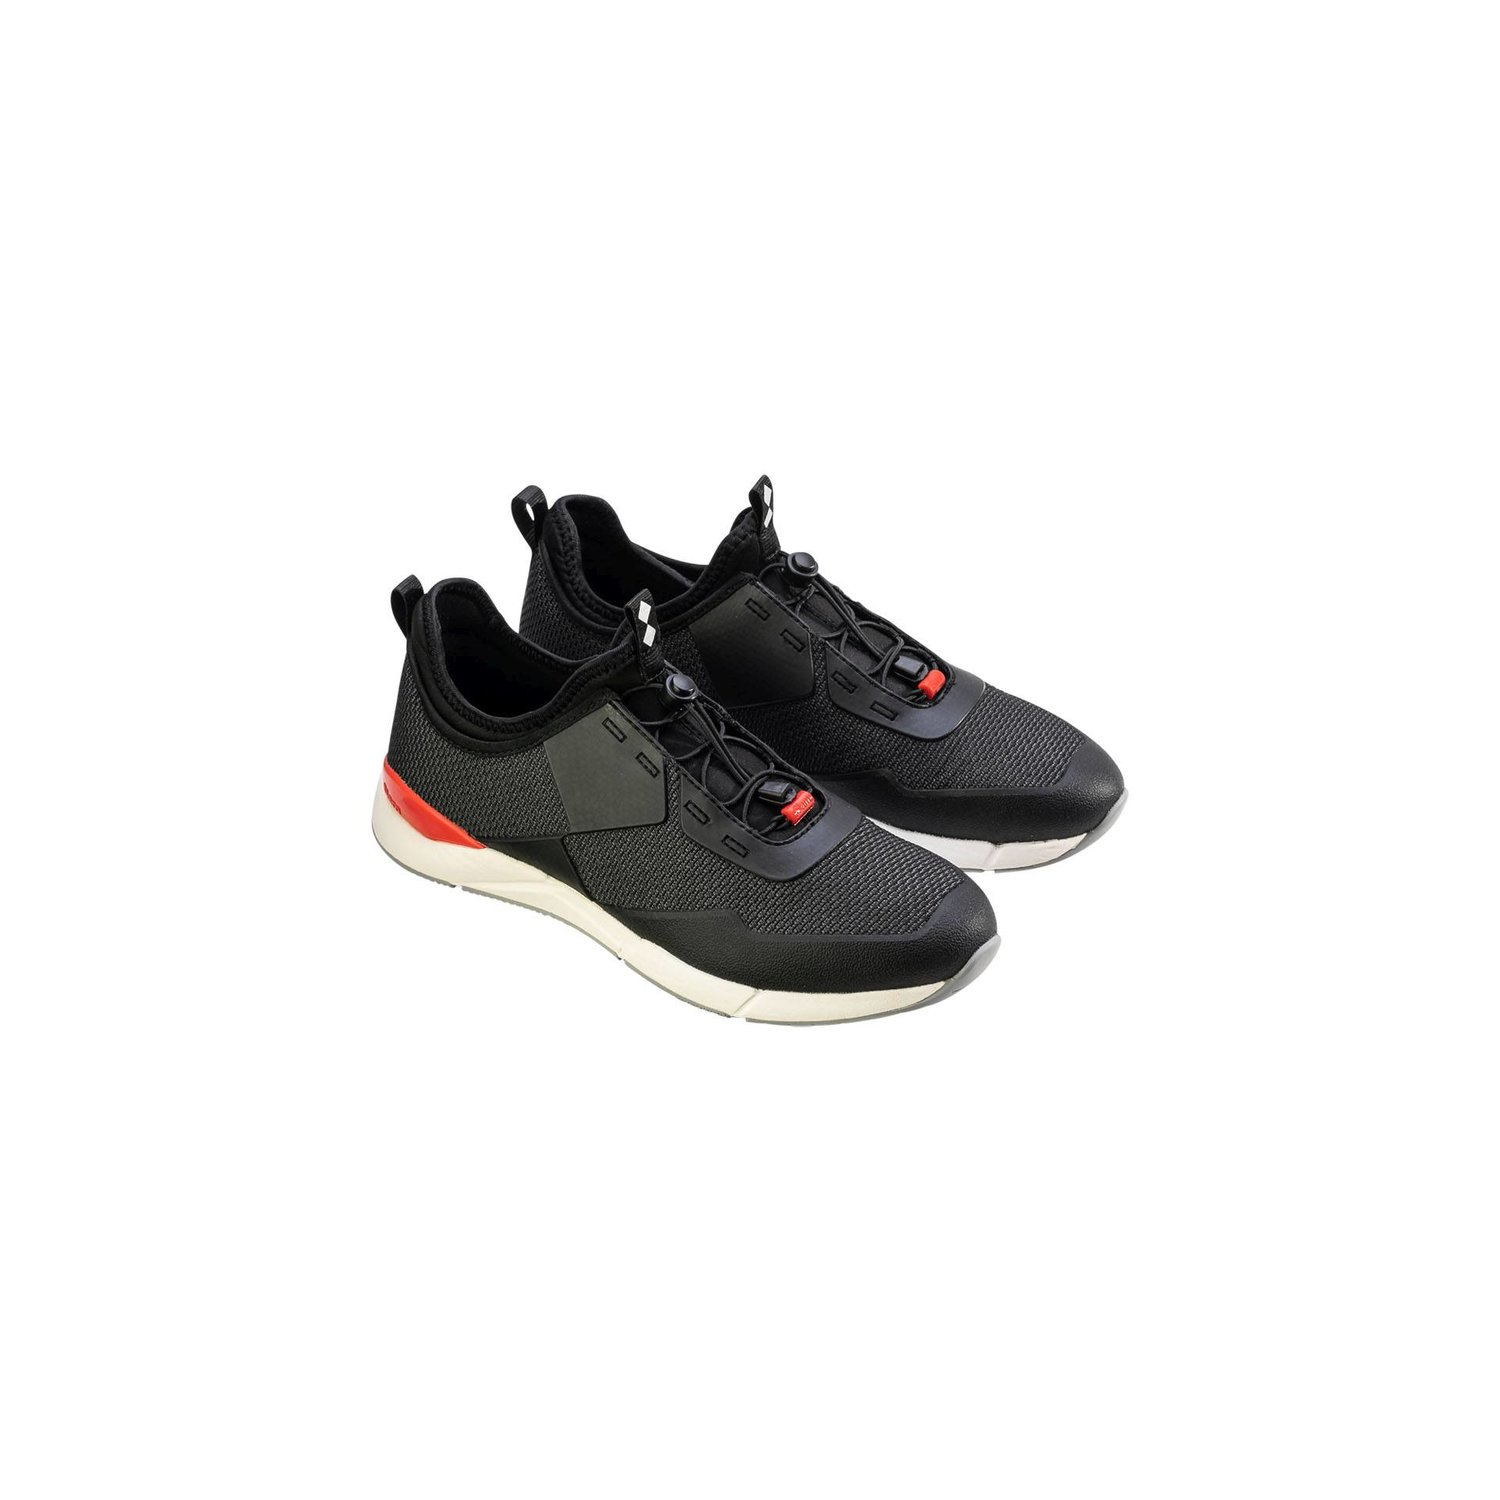 Win-D Technical Shoe - Nero / Bianco